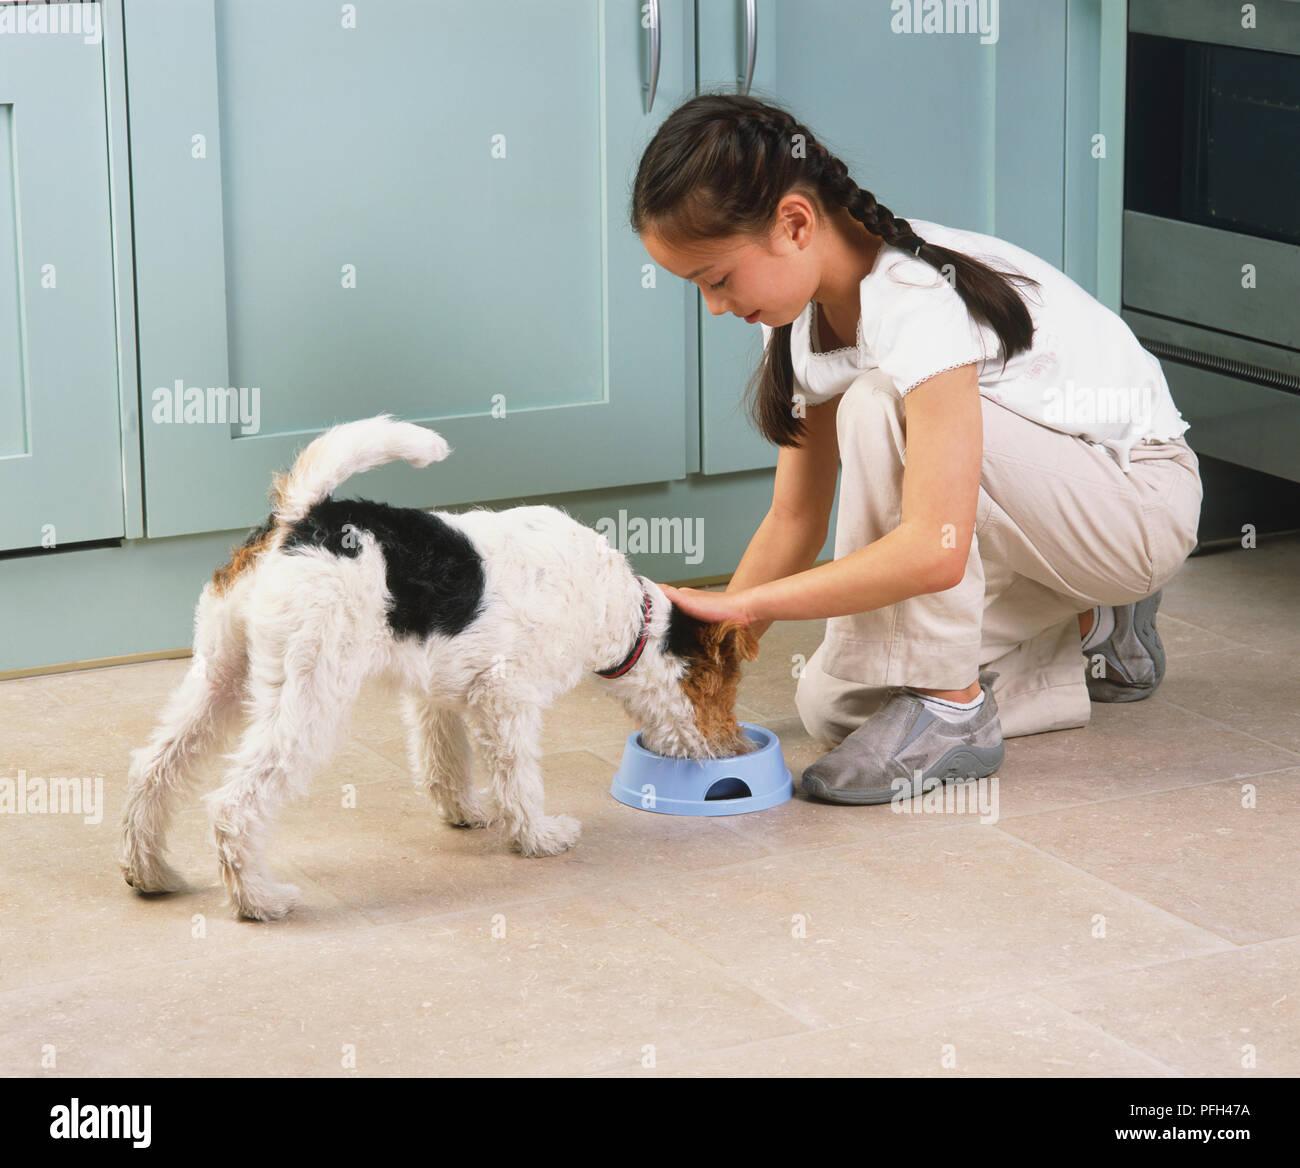 A Fox Terrier Stock Photos & A Fox Terrier Stock Images - Alamy